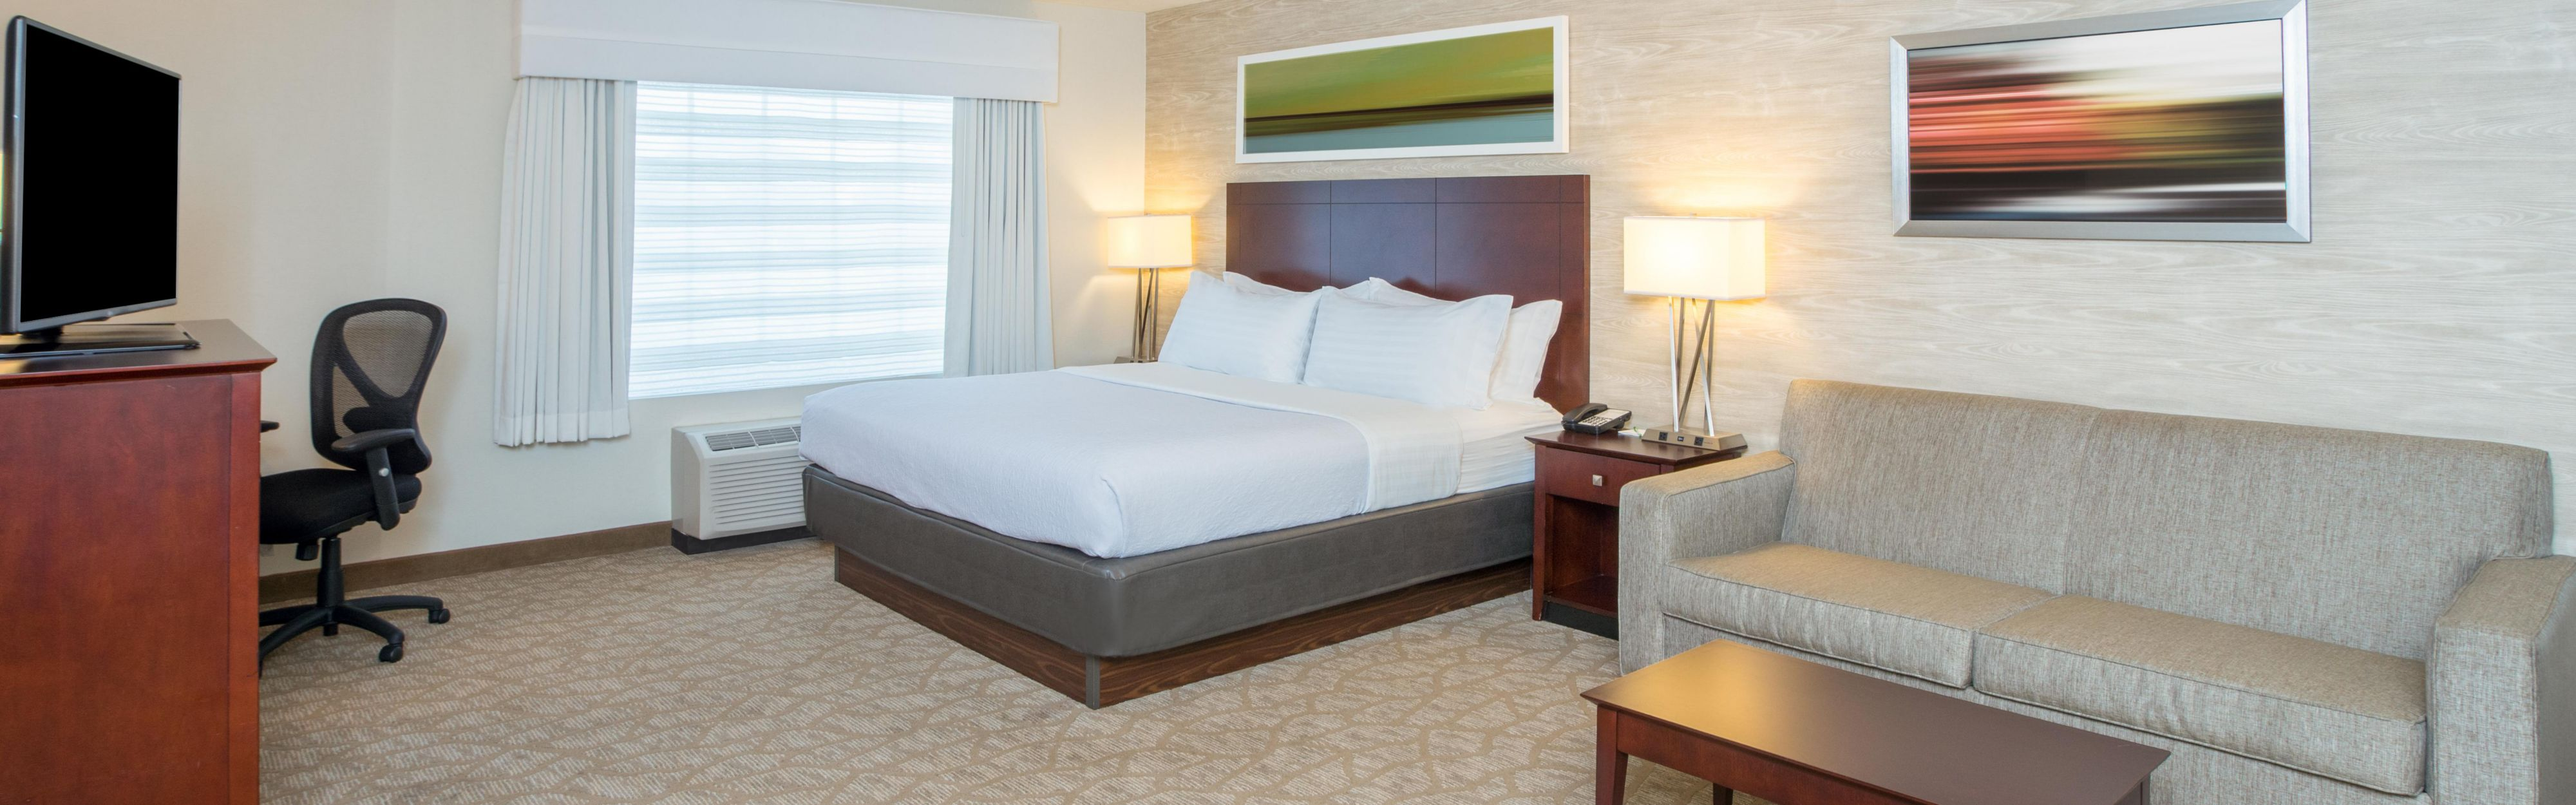 Baltimore, Maryland Hotel Near BWI Airport   Holiday Inn